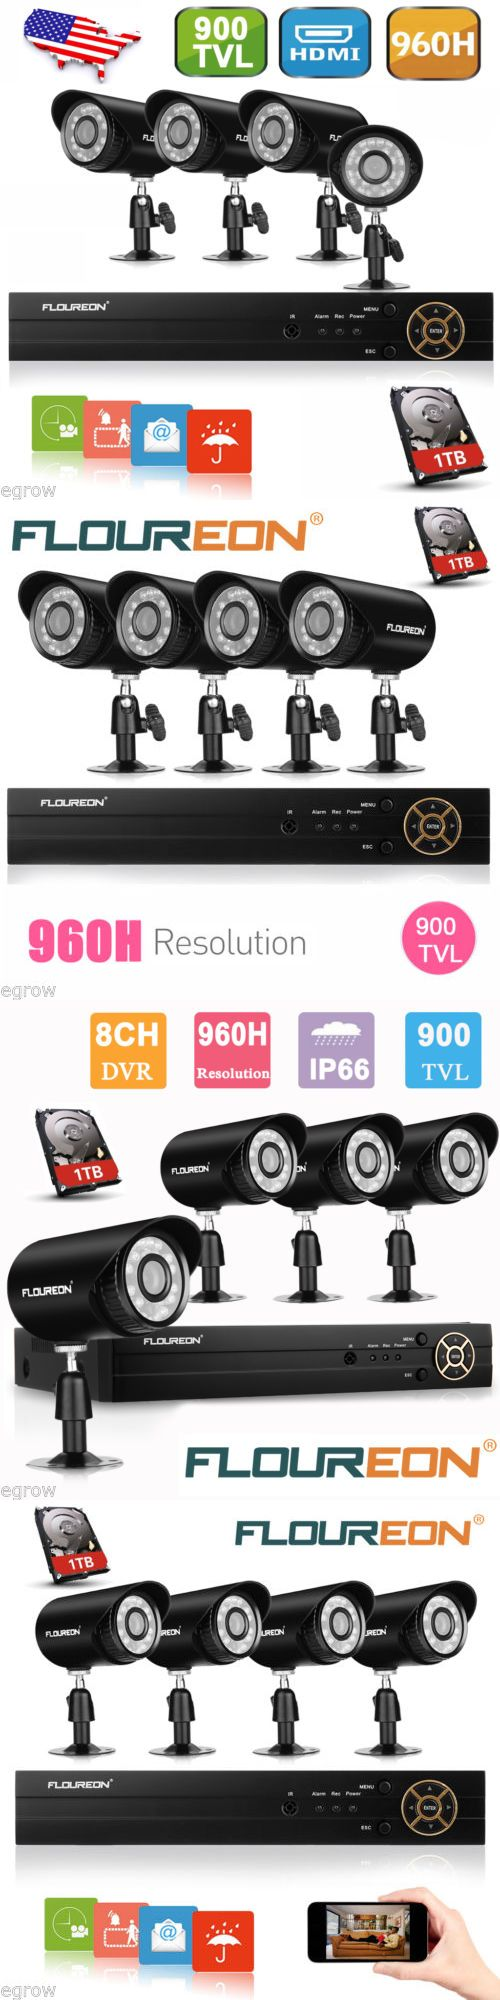 Surveillance Security Systems: 8Ch Hdmi Dvr 900Tvl Cctv Ir Outdoor Home Security Camera System 1Tb Hard Drive BUY IT NOW ONLY: $139.99